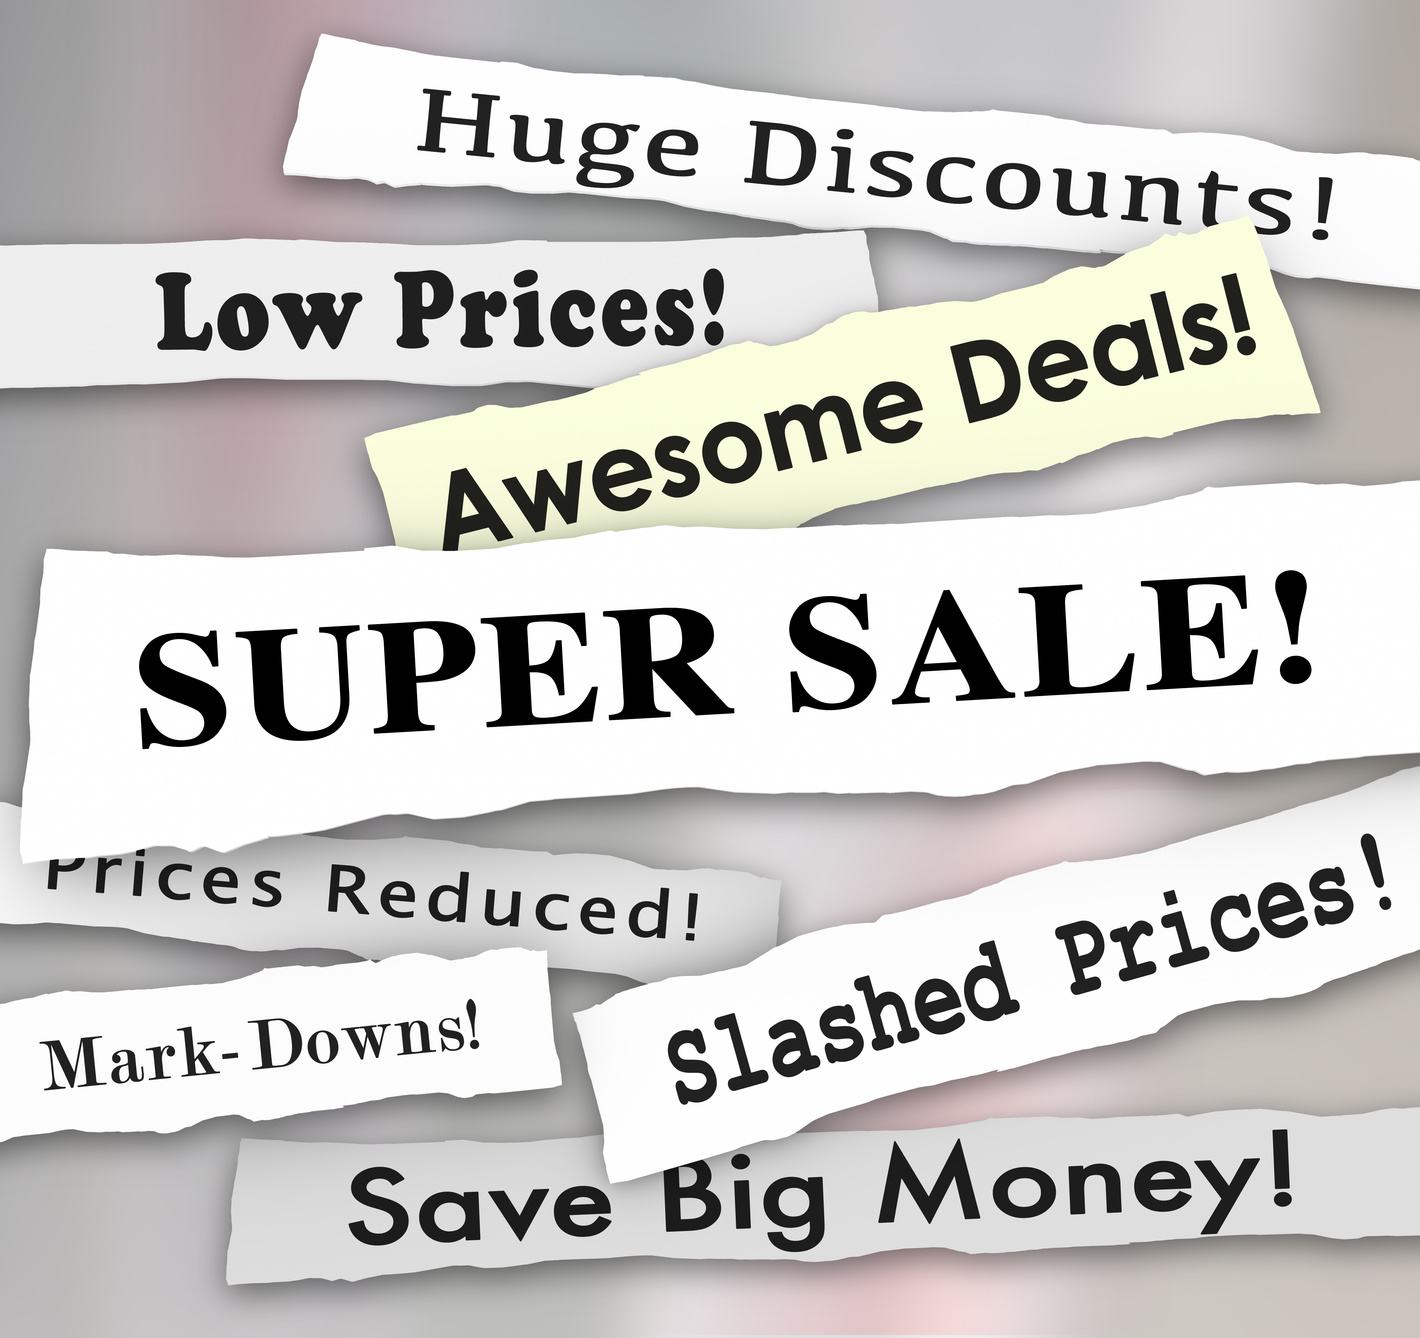 Super Sale Prices Reduced Big Savines Discounts Newspaper Flyer